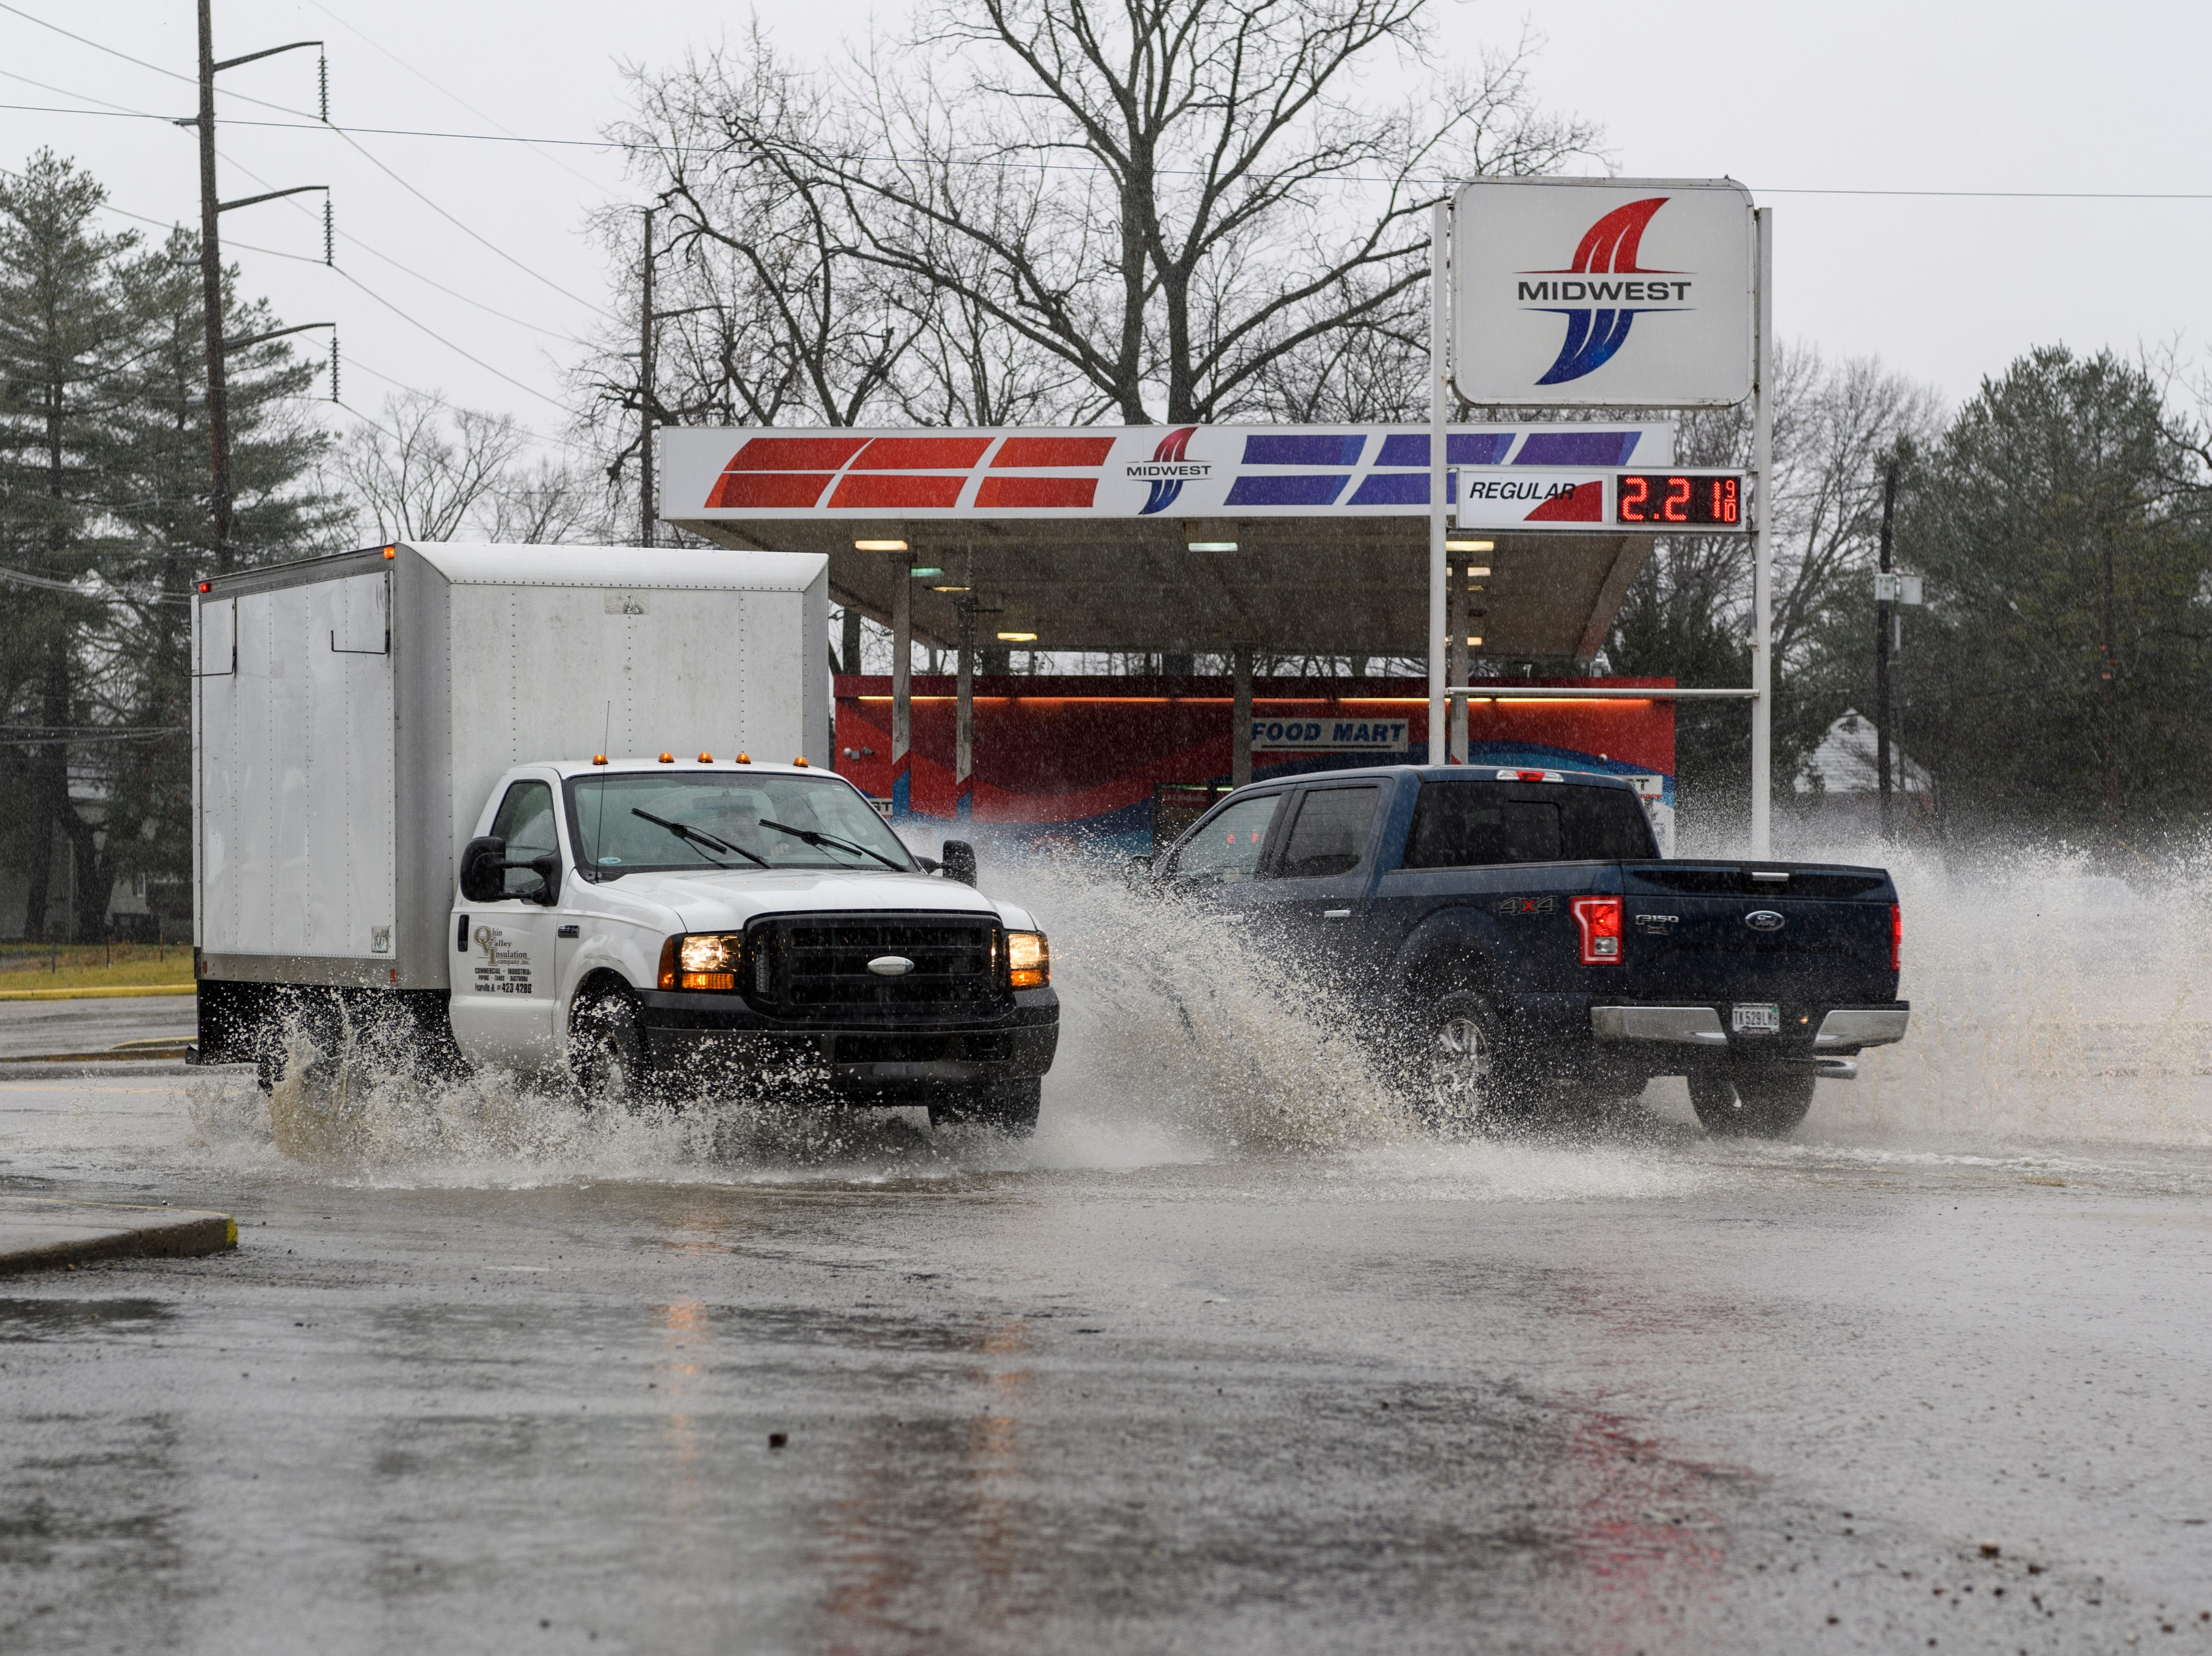 Vehicles drive through standing water at the intersection of North Tekoppel Avenue and Upper Mount Vernon Road on Evansville's west side as heavy rain hit the area, Thursday morning, Feb. 7, 2019.